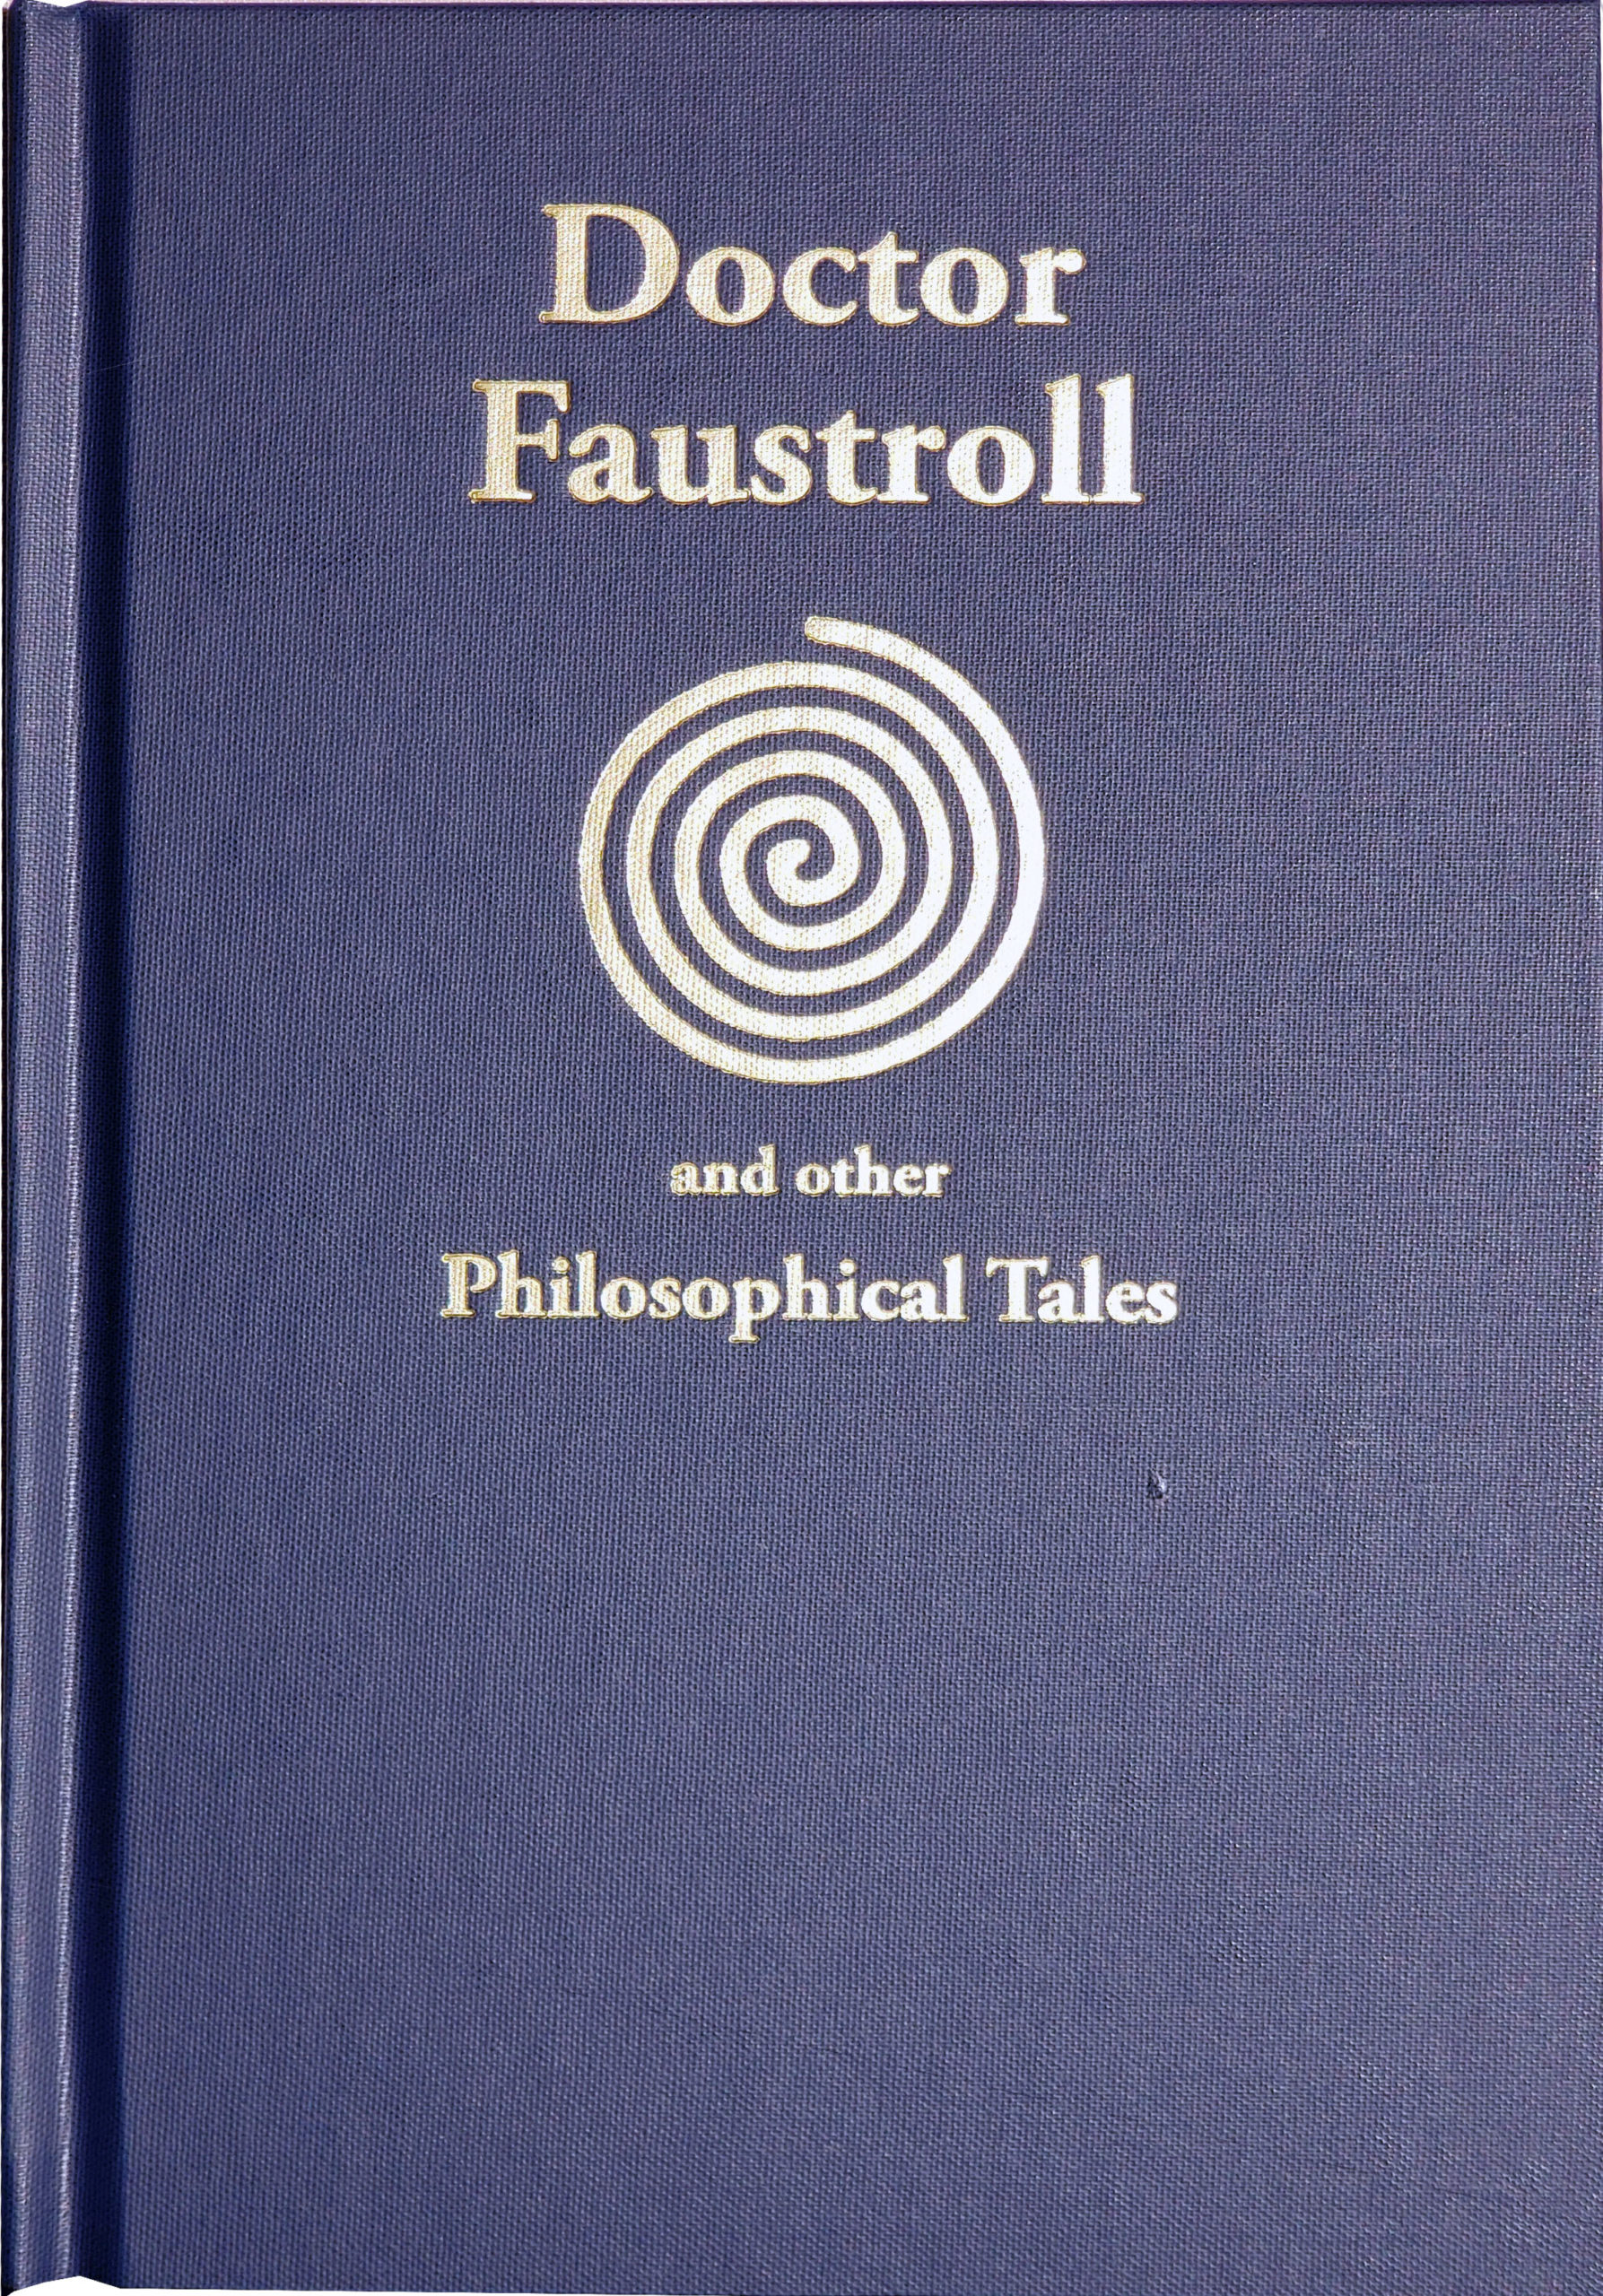 Doctor Faustroll and other Philosophical Tales